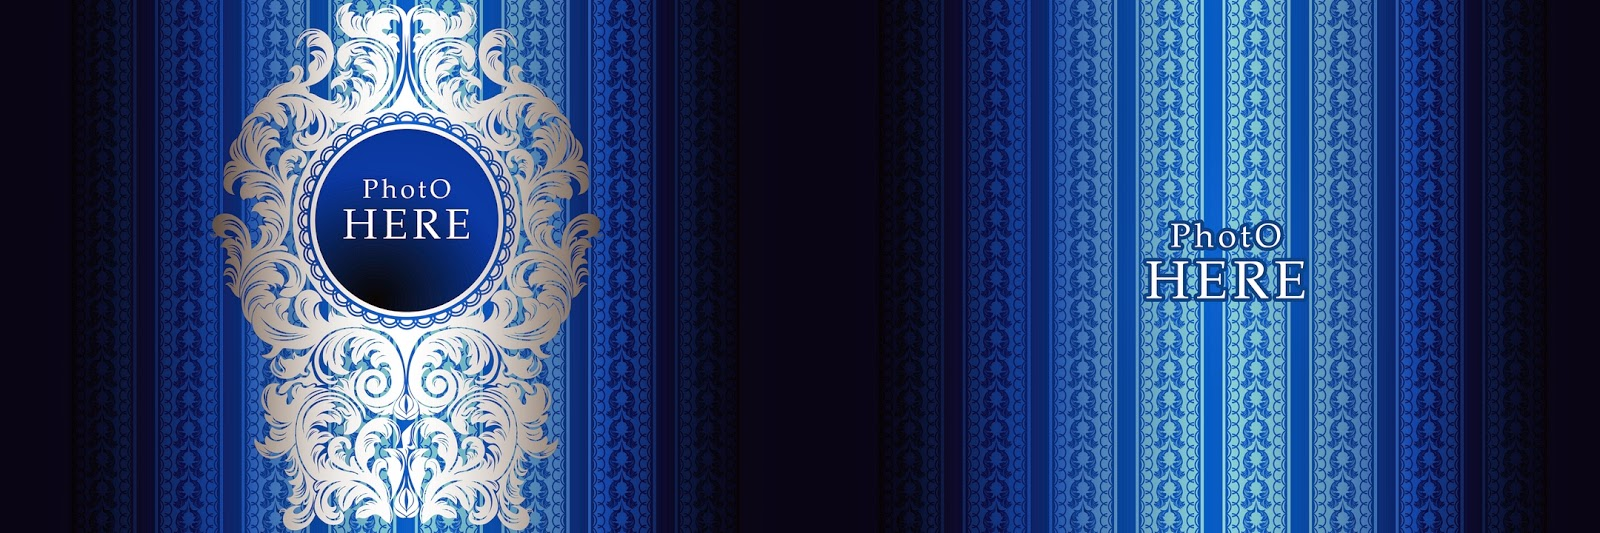 Wedding Backgrounds Psd Free Backgrounds Fulll Hd Set 8